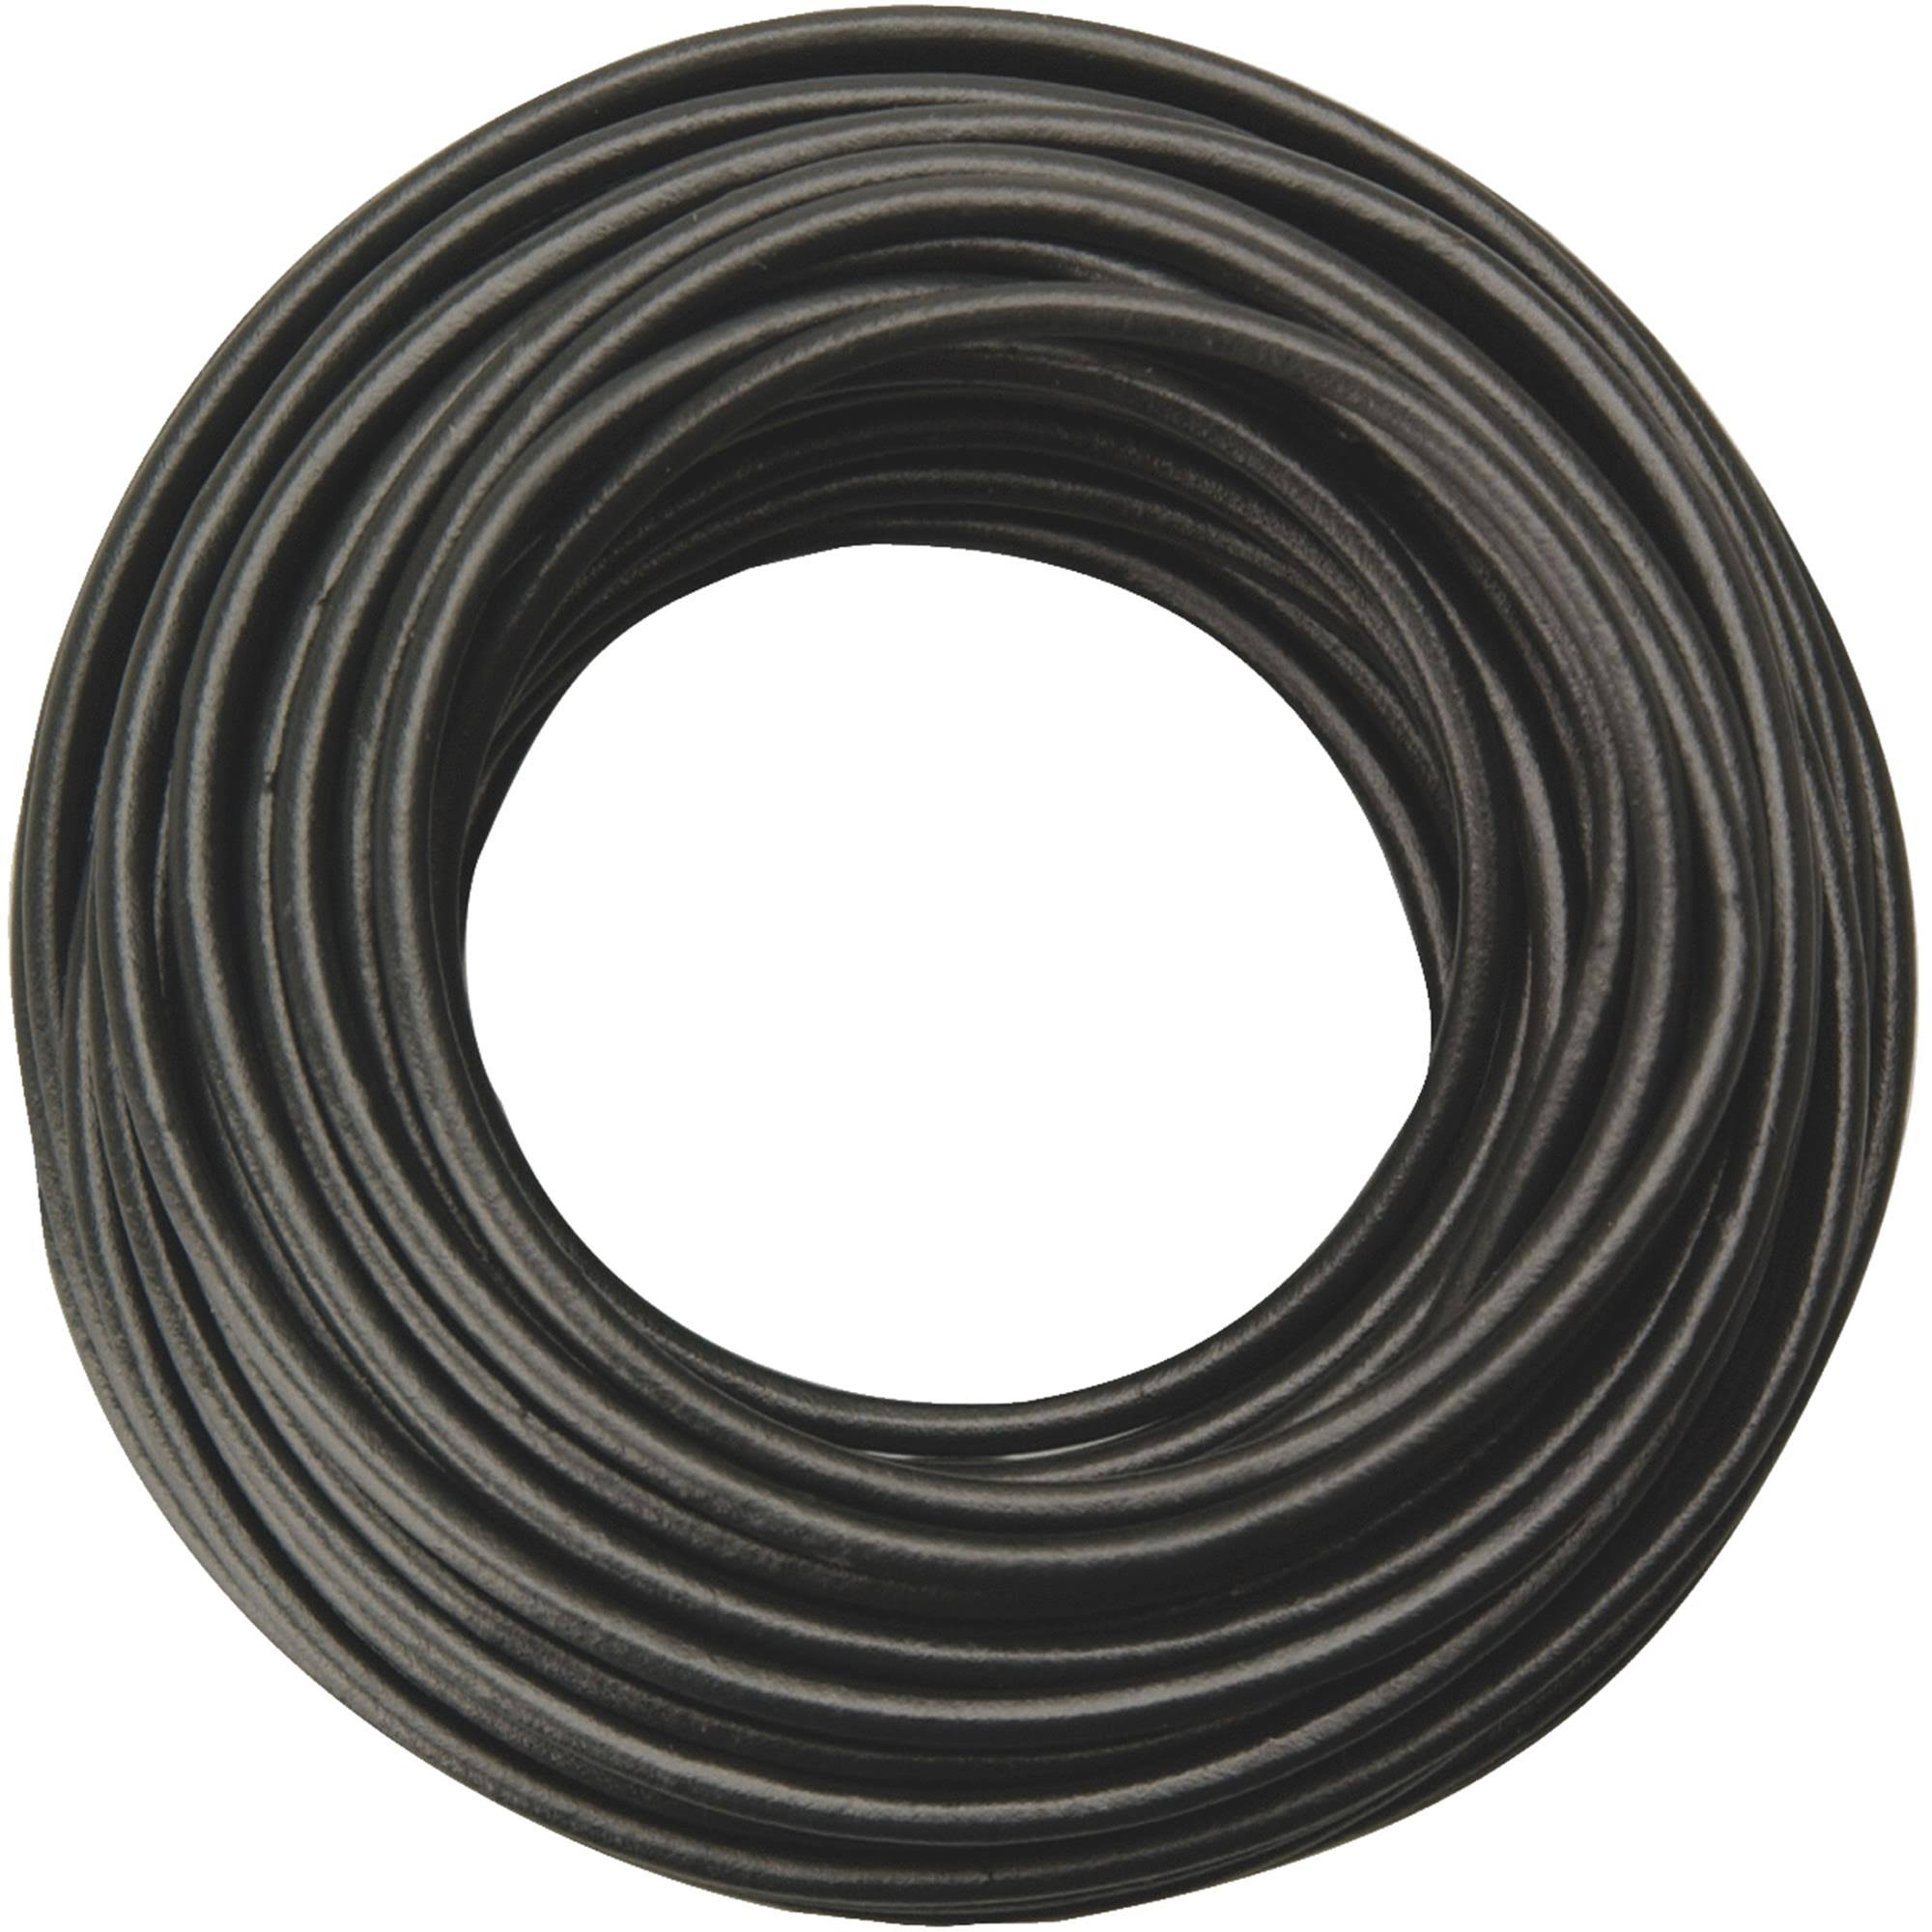 Coleman Cable 18 Gauge Primary Wire - Black, 33ft